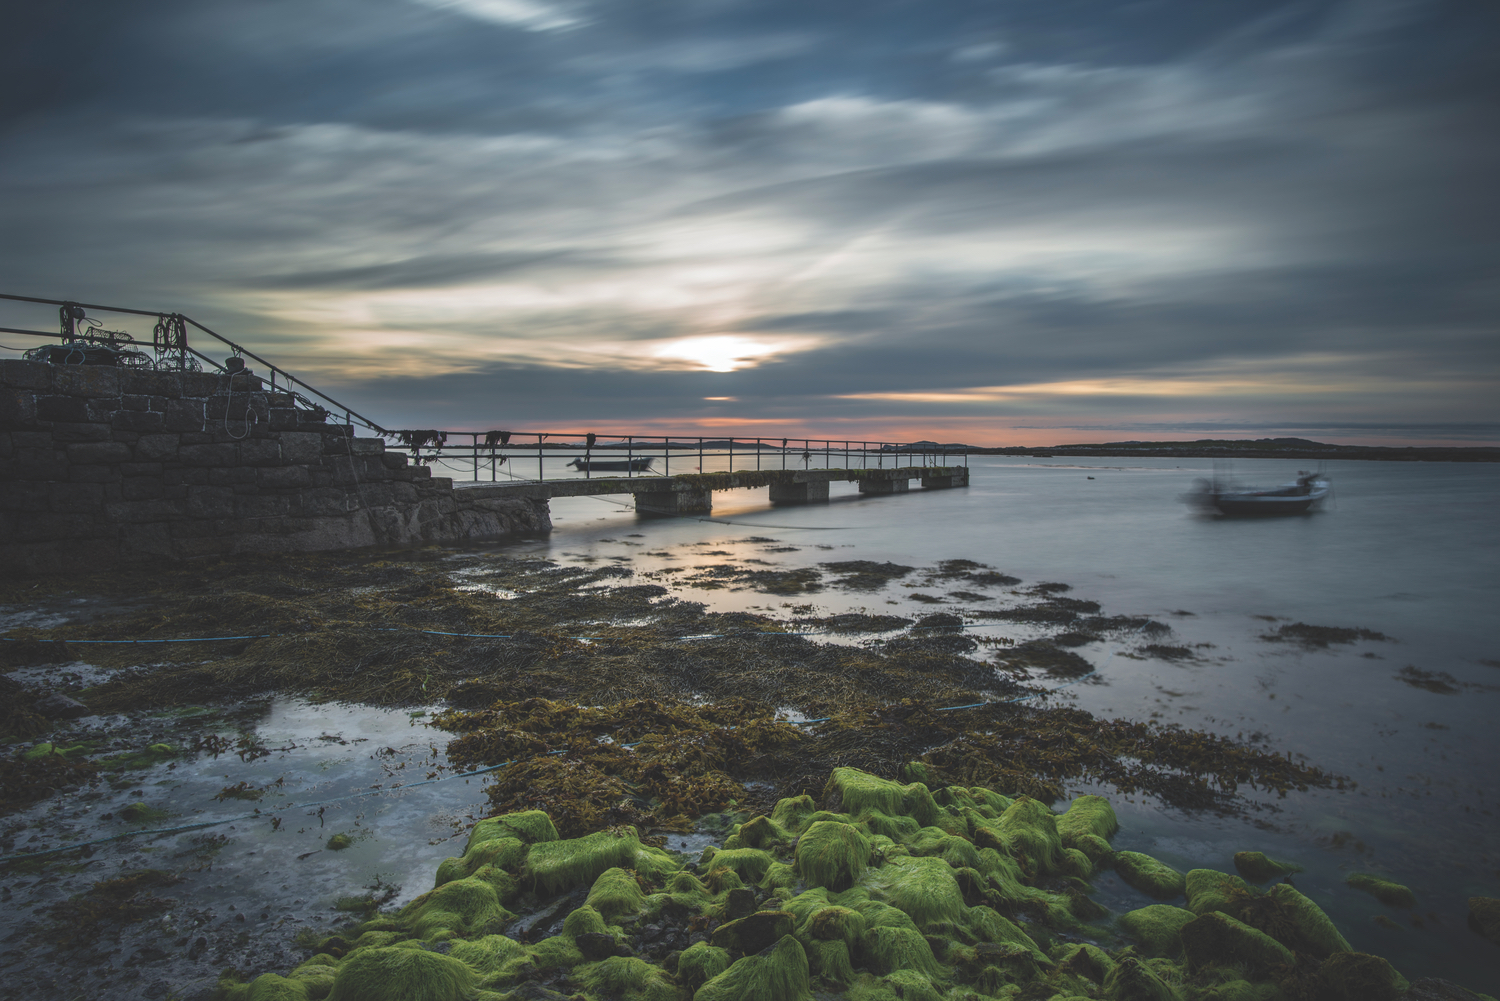 Rossadillisk—one of the most picturesque piers in Connemara; Photo by Mark Furniss Photography